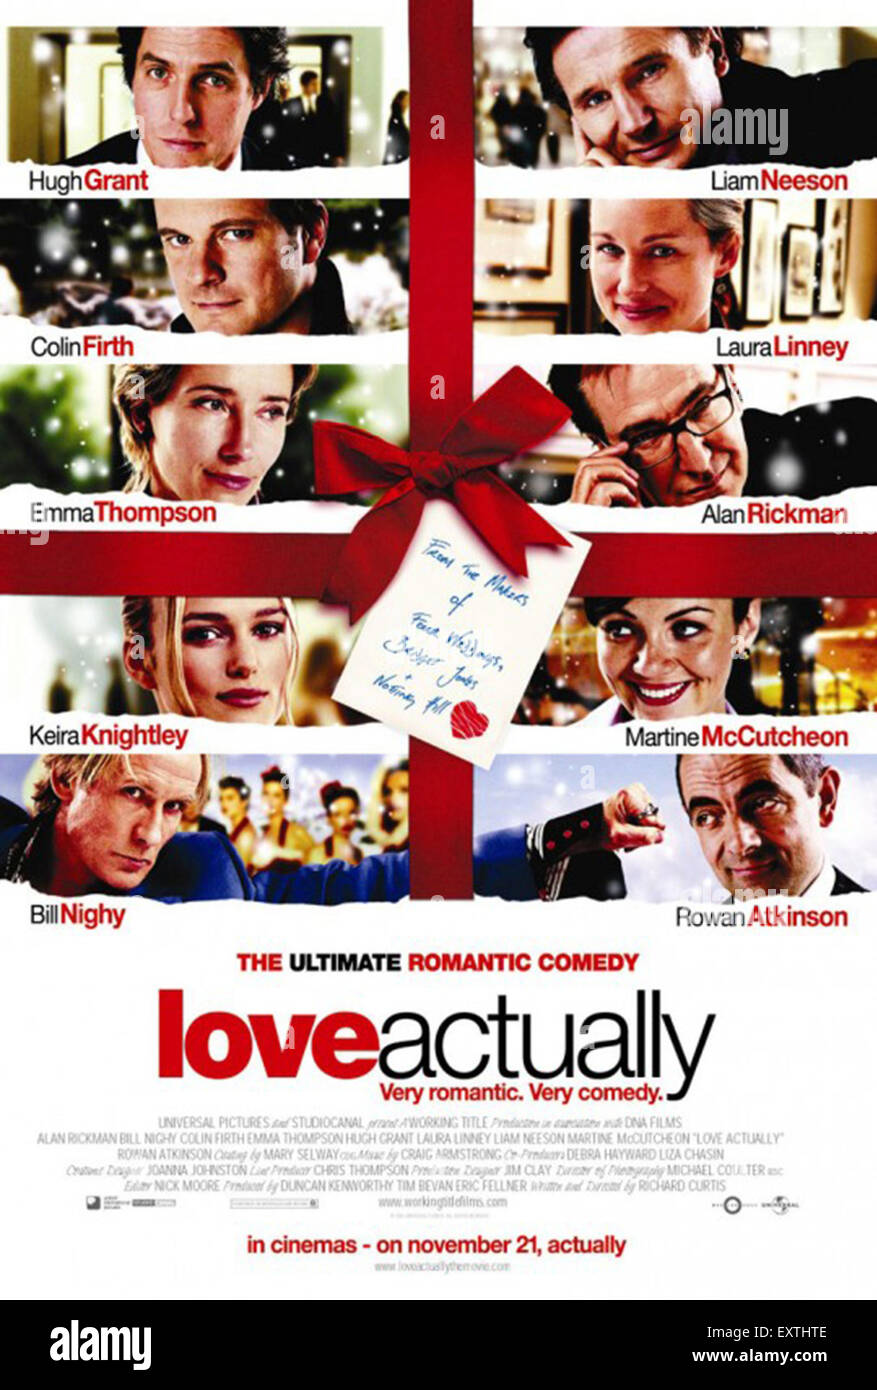 2000s UK Love Actually Film Poster - Stock Image